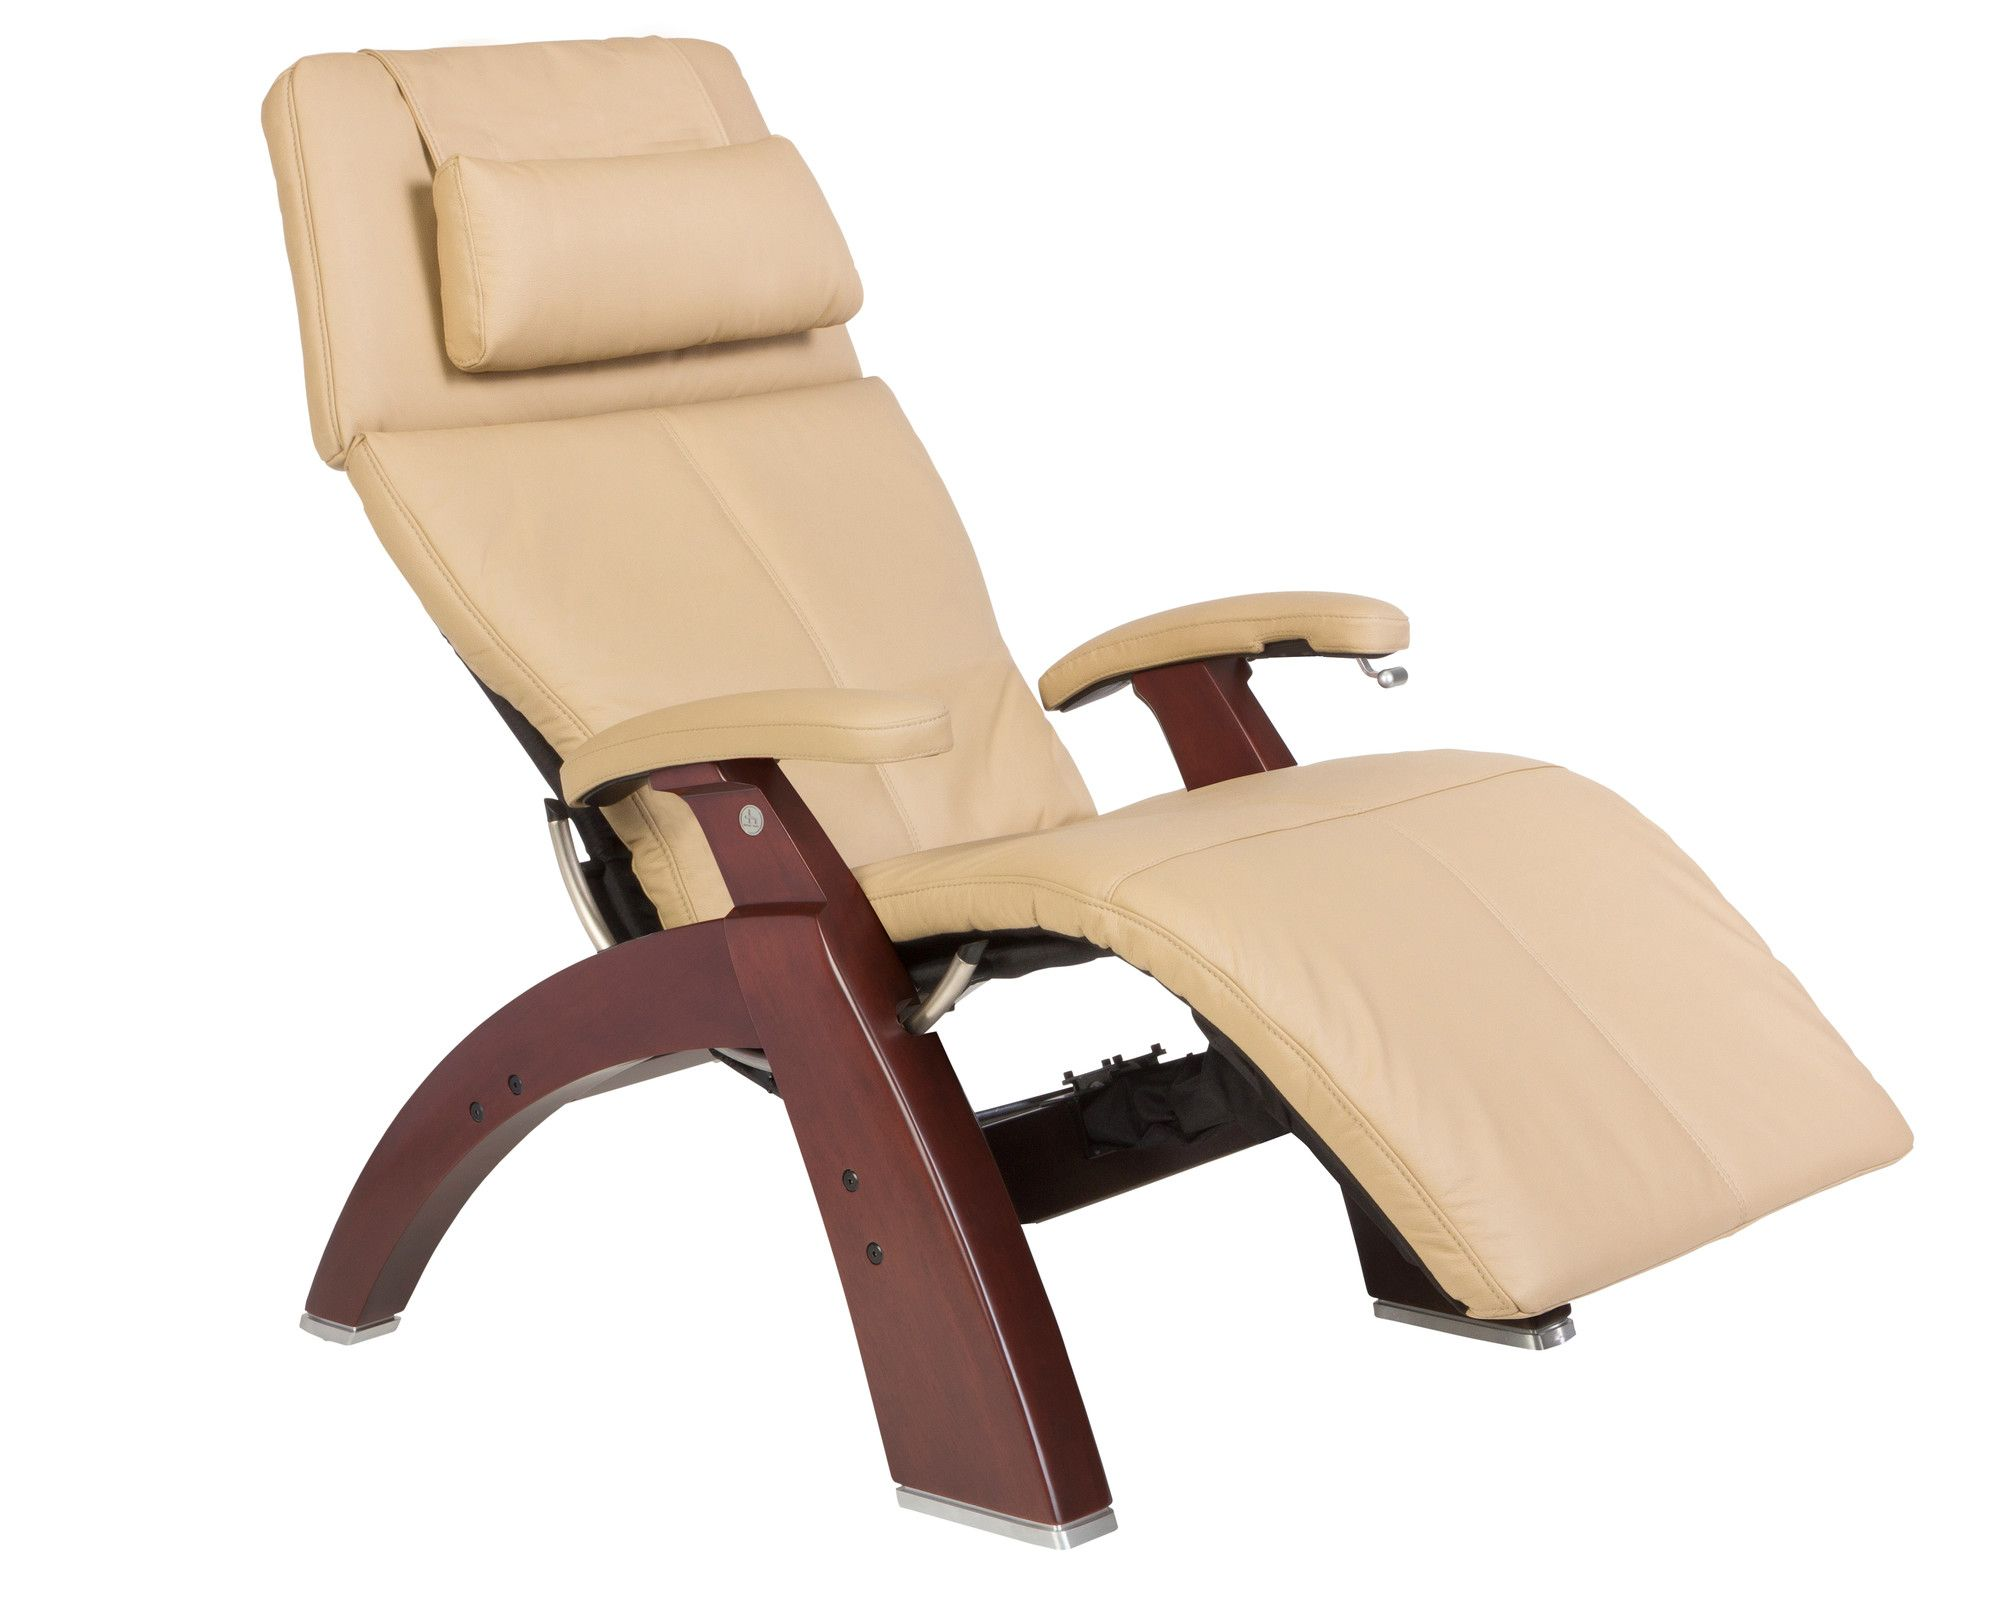 Human Touch Perfect Chair Classic Manual Zero Gravity Recliner Perfect Chair Zero Gravity Recliner Recliner